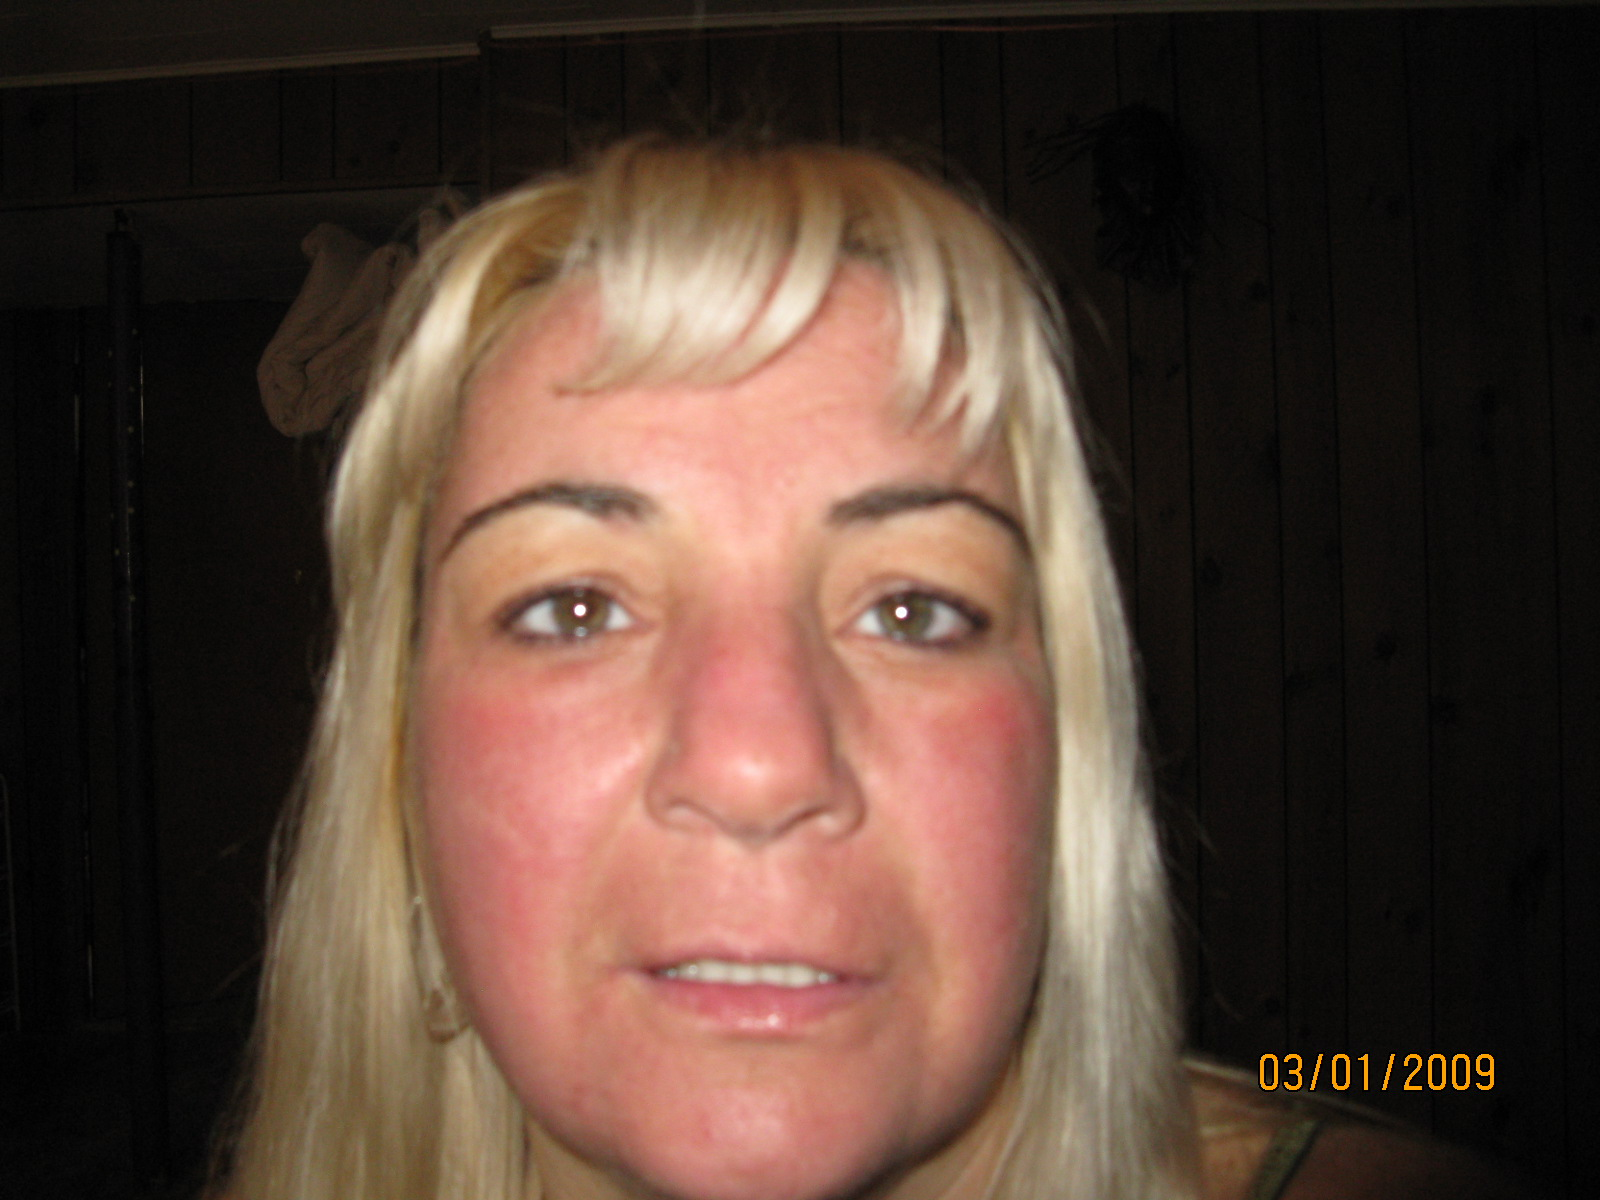 Day 4- face still swollen, red, peeling and started to get really itchy this morning.